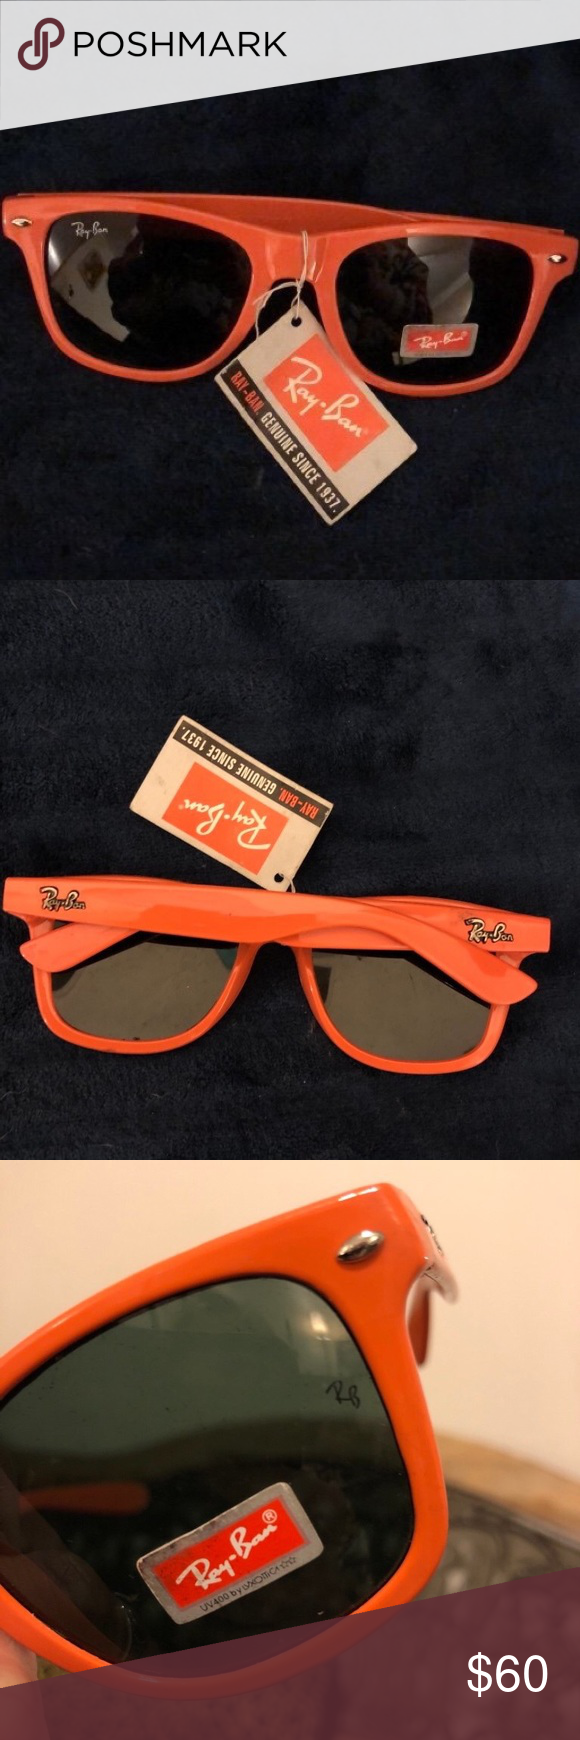 2bb752ffce Ray-Ban LEI PENG Sunglasses - orange NWT Ray Ban LEI PENG  Sunglasses-Authentic - never worn - this is a steal Brand  Ray Ban  Condition  New Ray-Ban Other